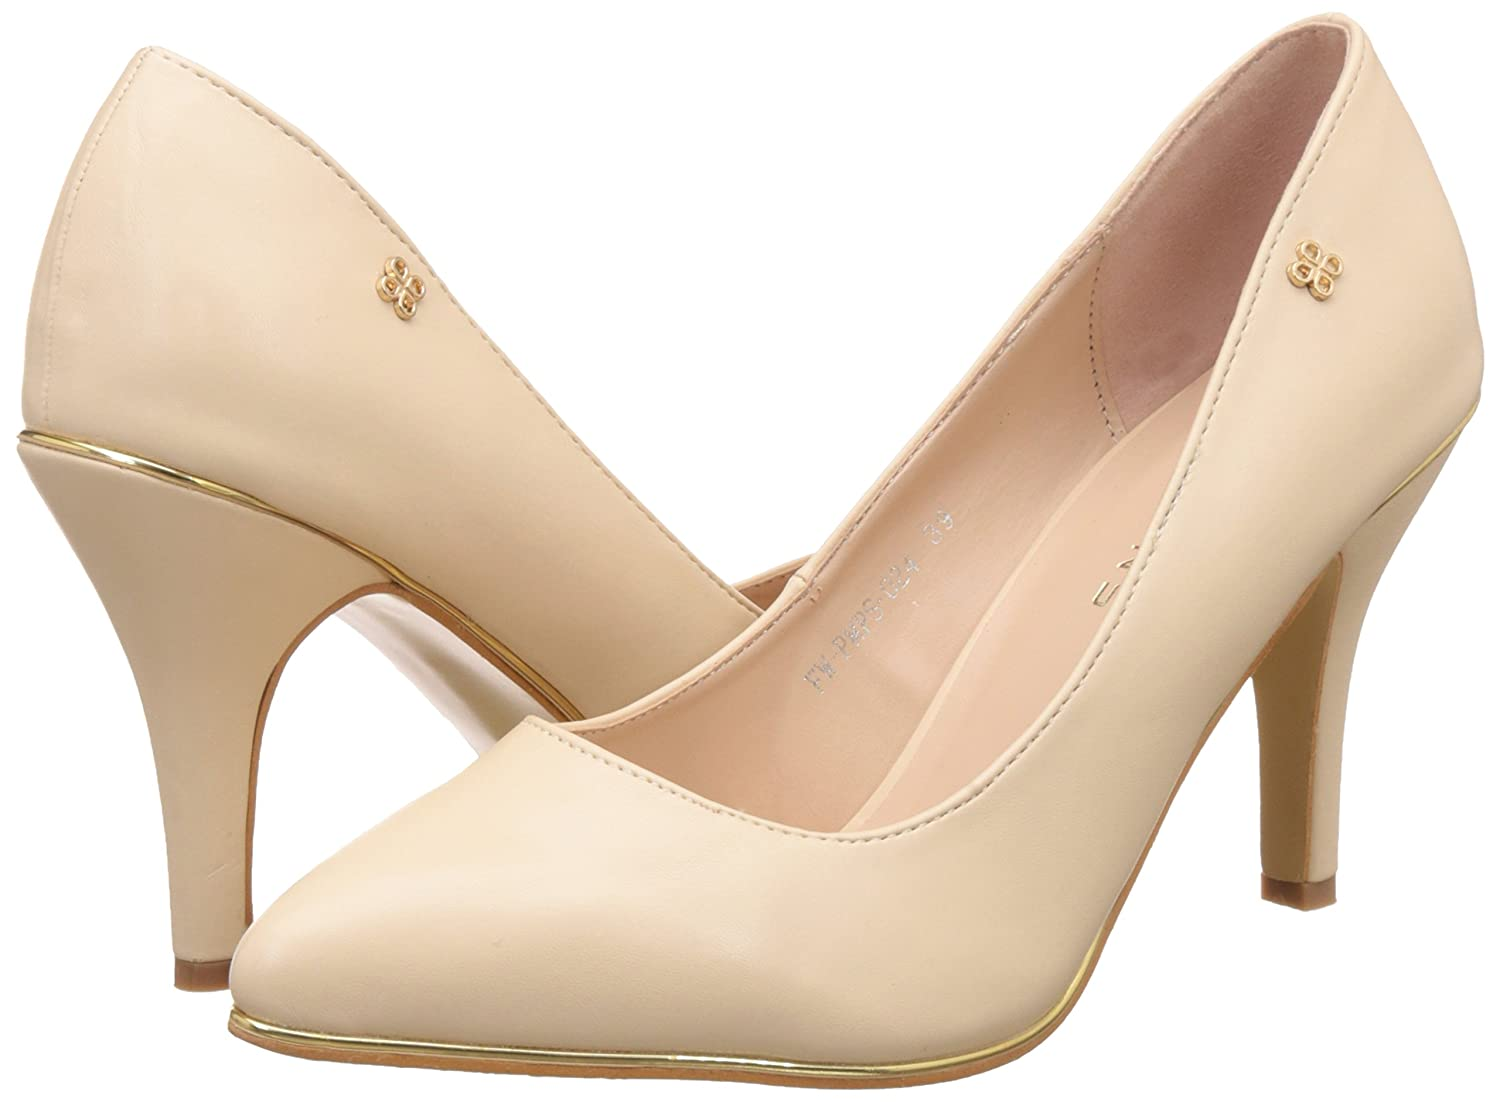 Addons Women's Pumps